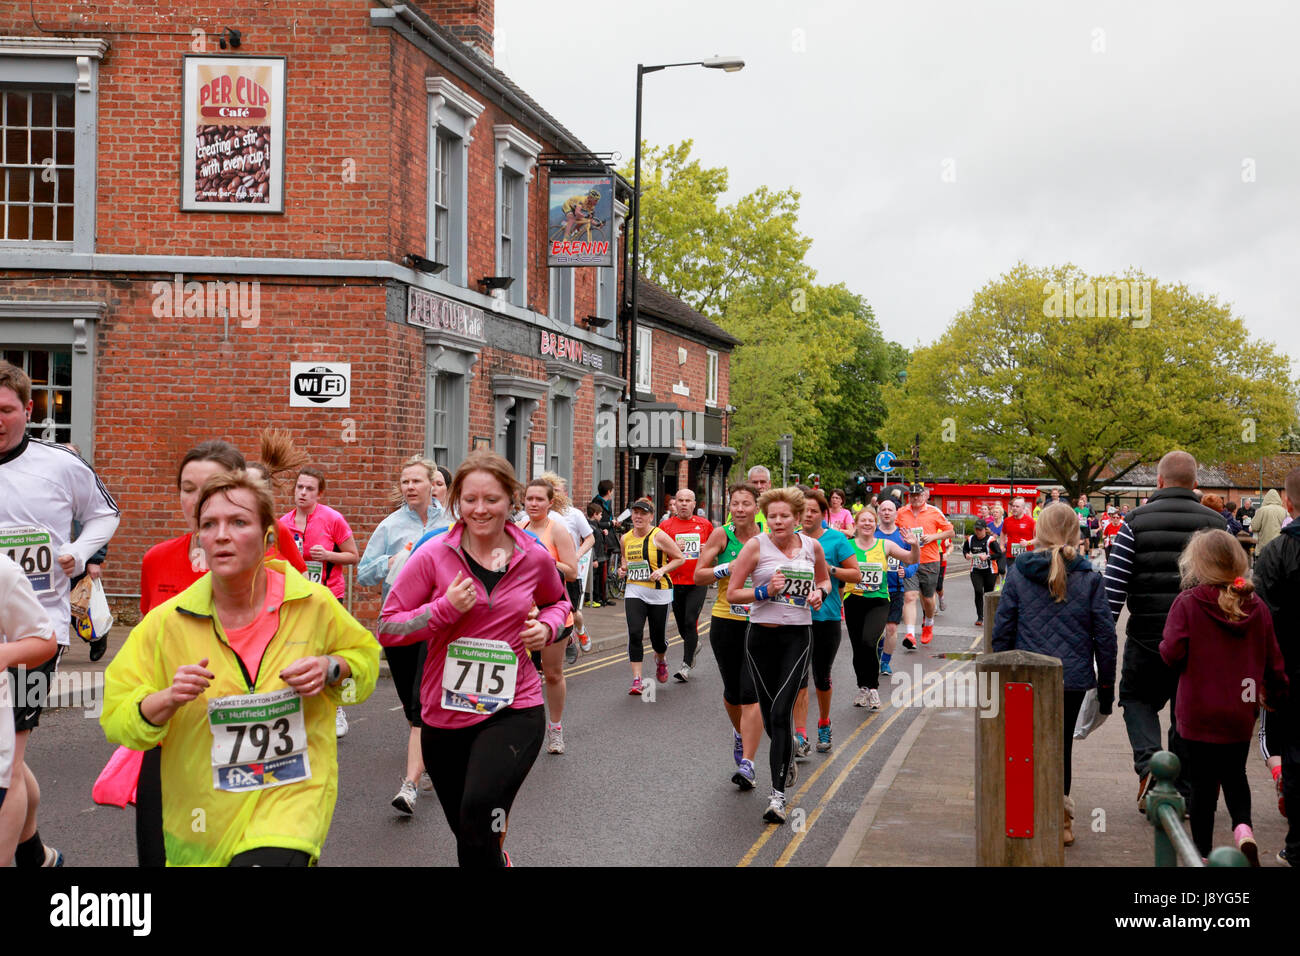 Some of the 2,500 runners in the Market Drayton 10K race running down the main street in the centre of the town - Stock Image